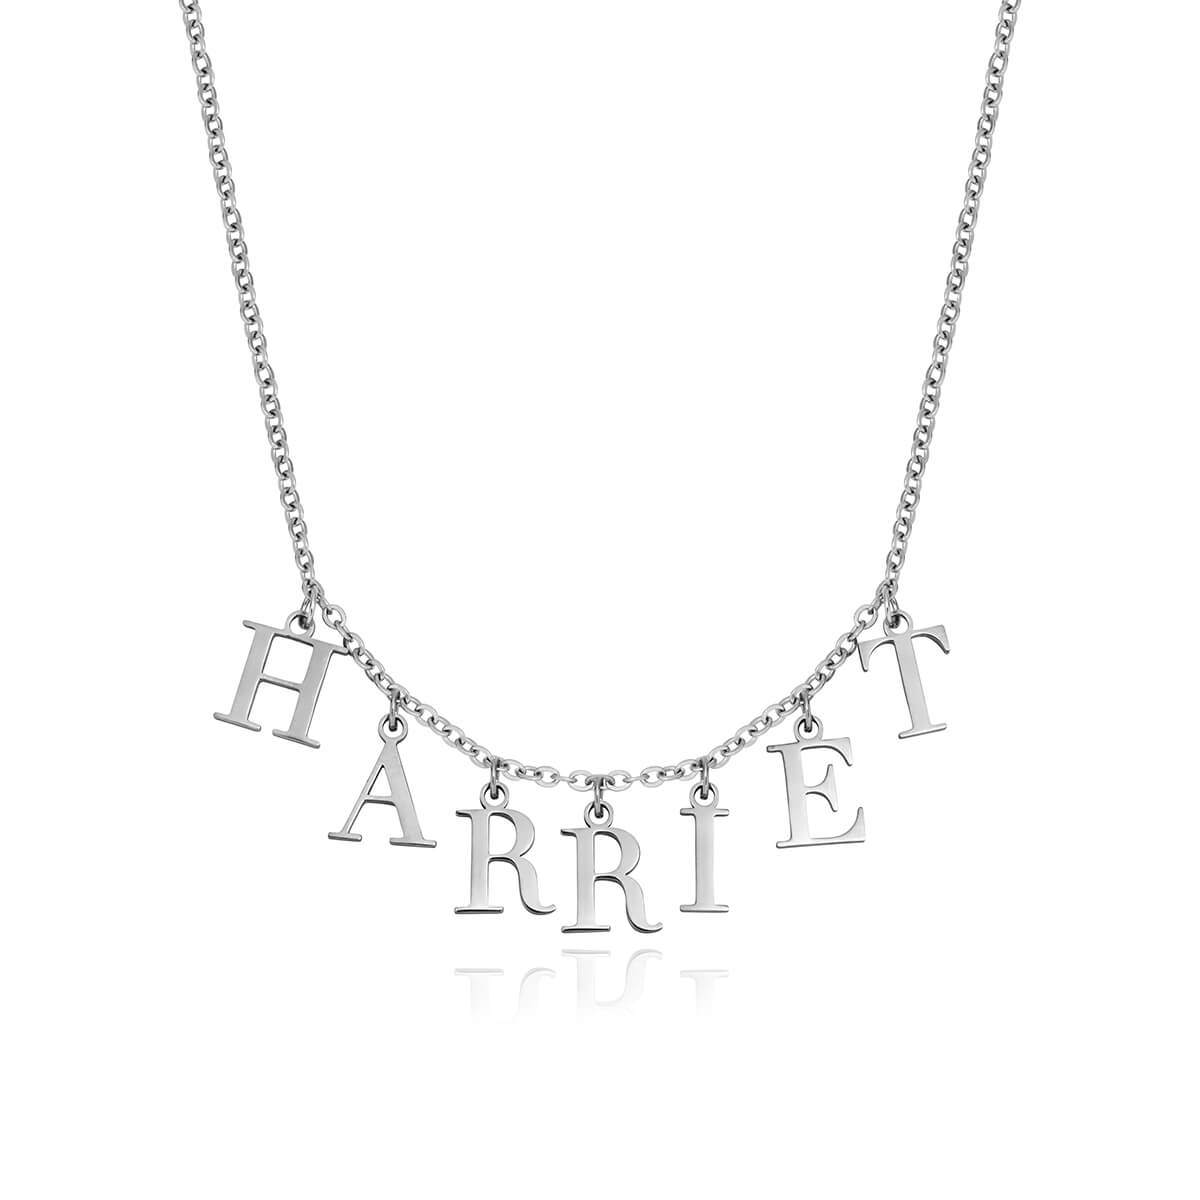 Editorial Letter Name Necklace (Silver)